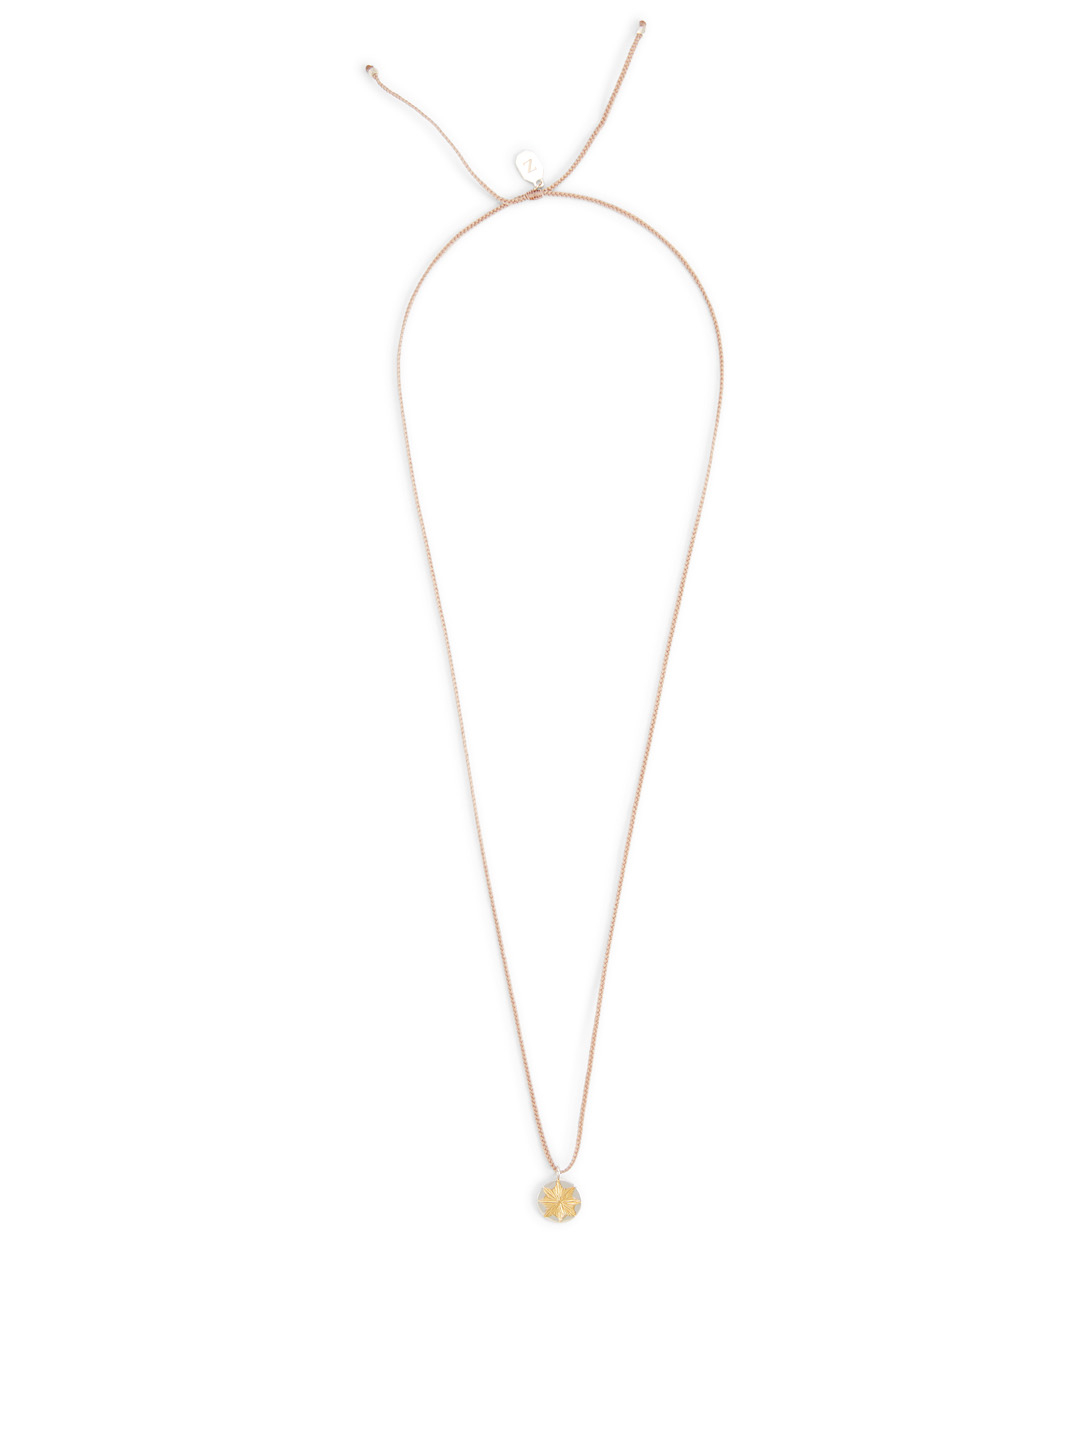 IZA JEWELRY Small Dawn + Dusk 18K Gold-Plated And Sterling Silver Pendant Necklace H Project Pink